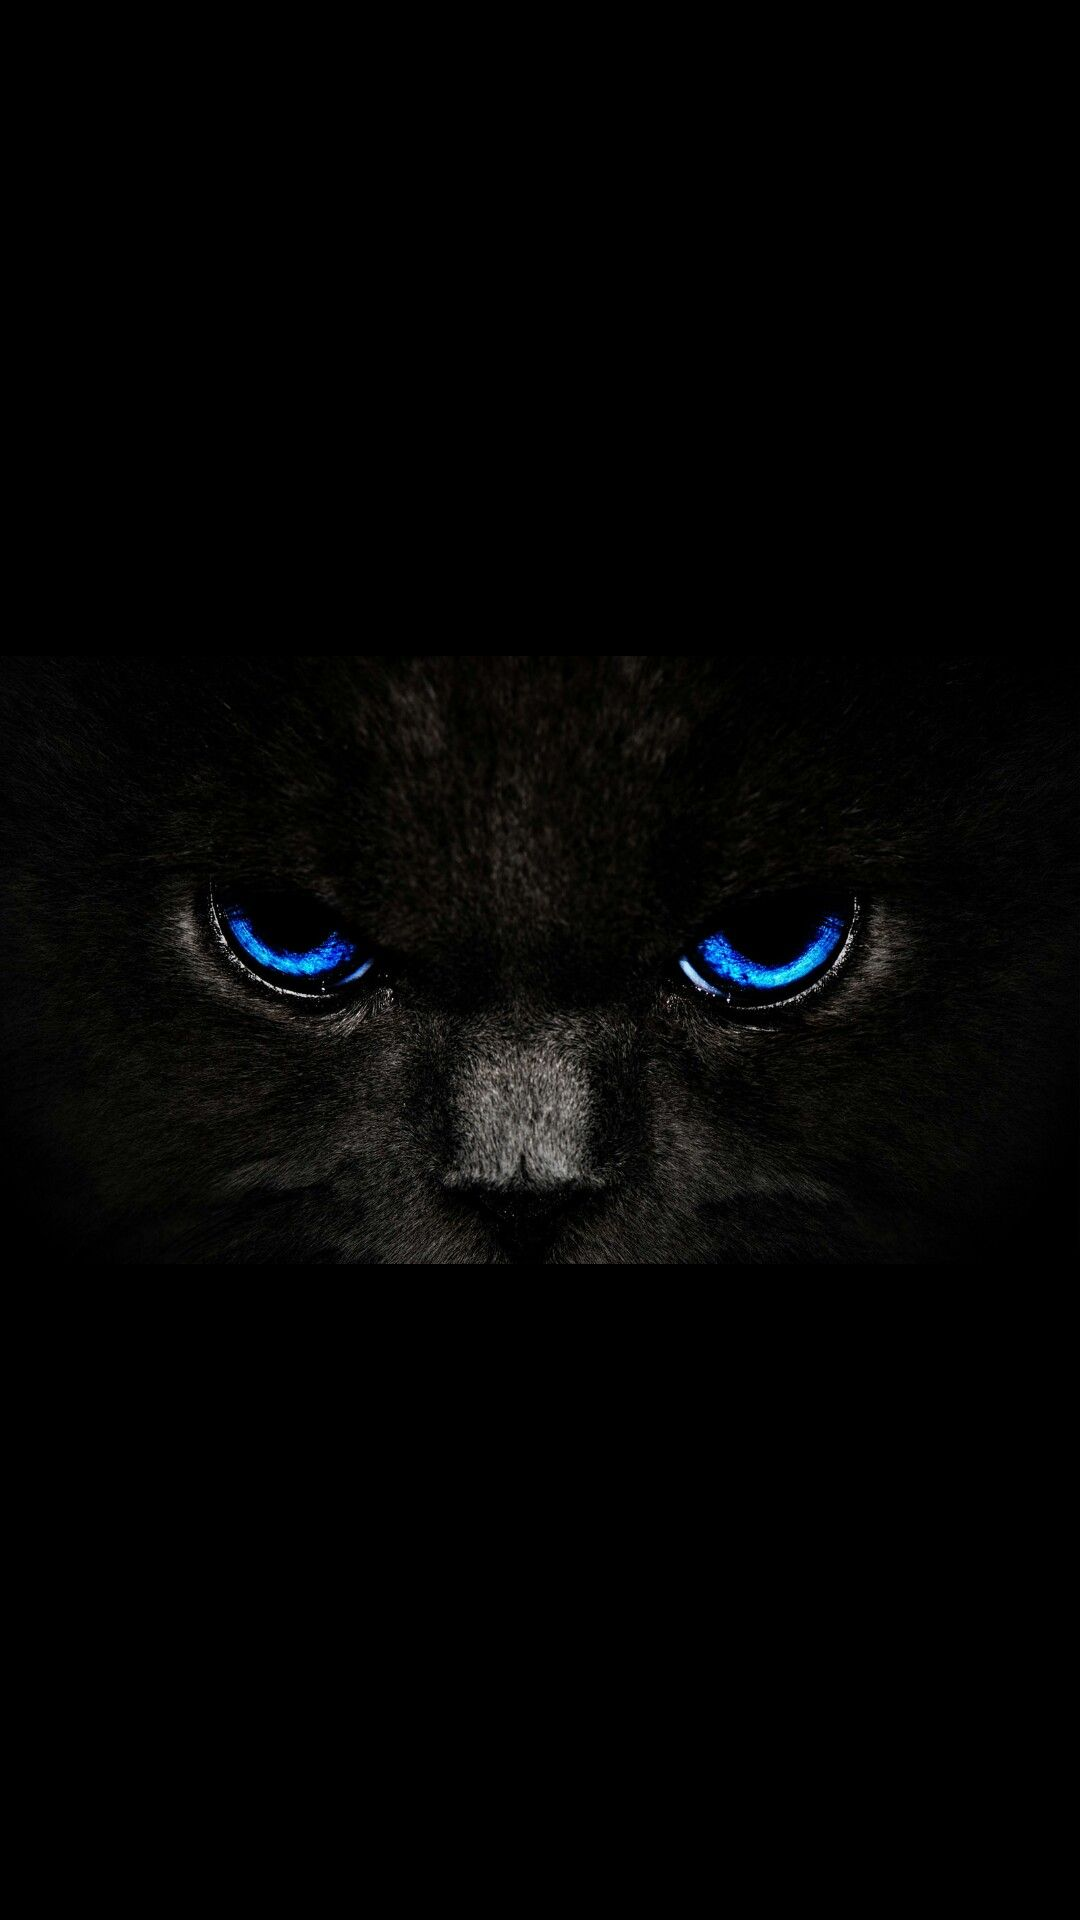 Pin By Chandu On Cats Cat With Blue Eyes Eyes Wallpaper Cat Wallpaper